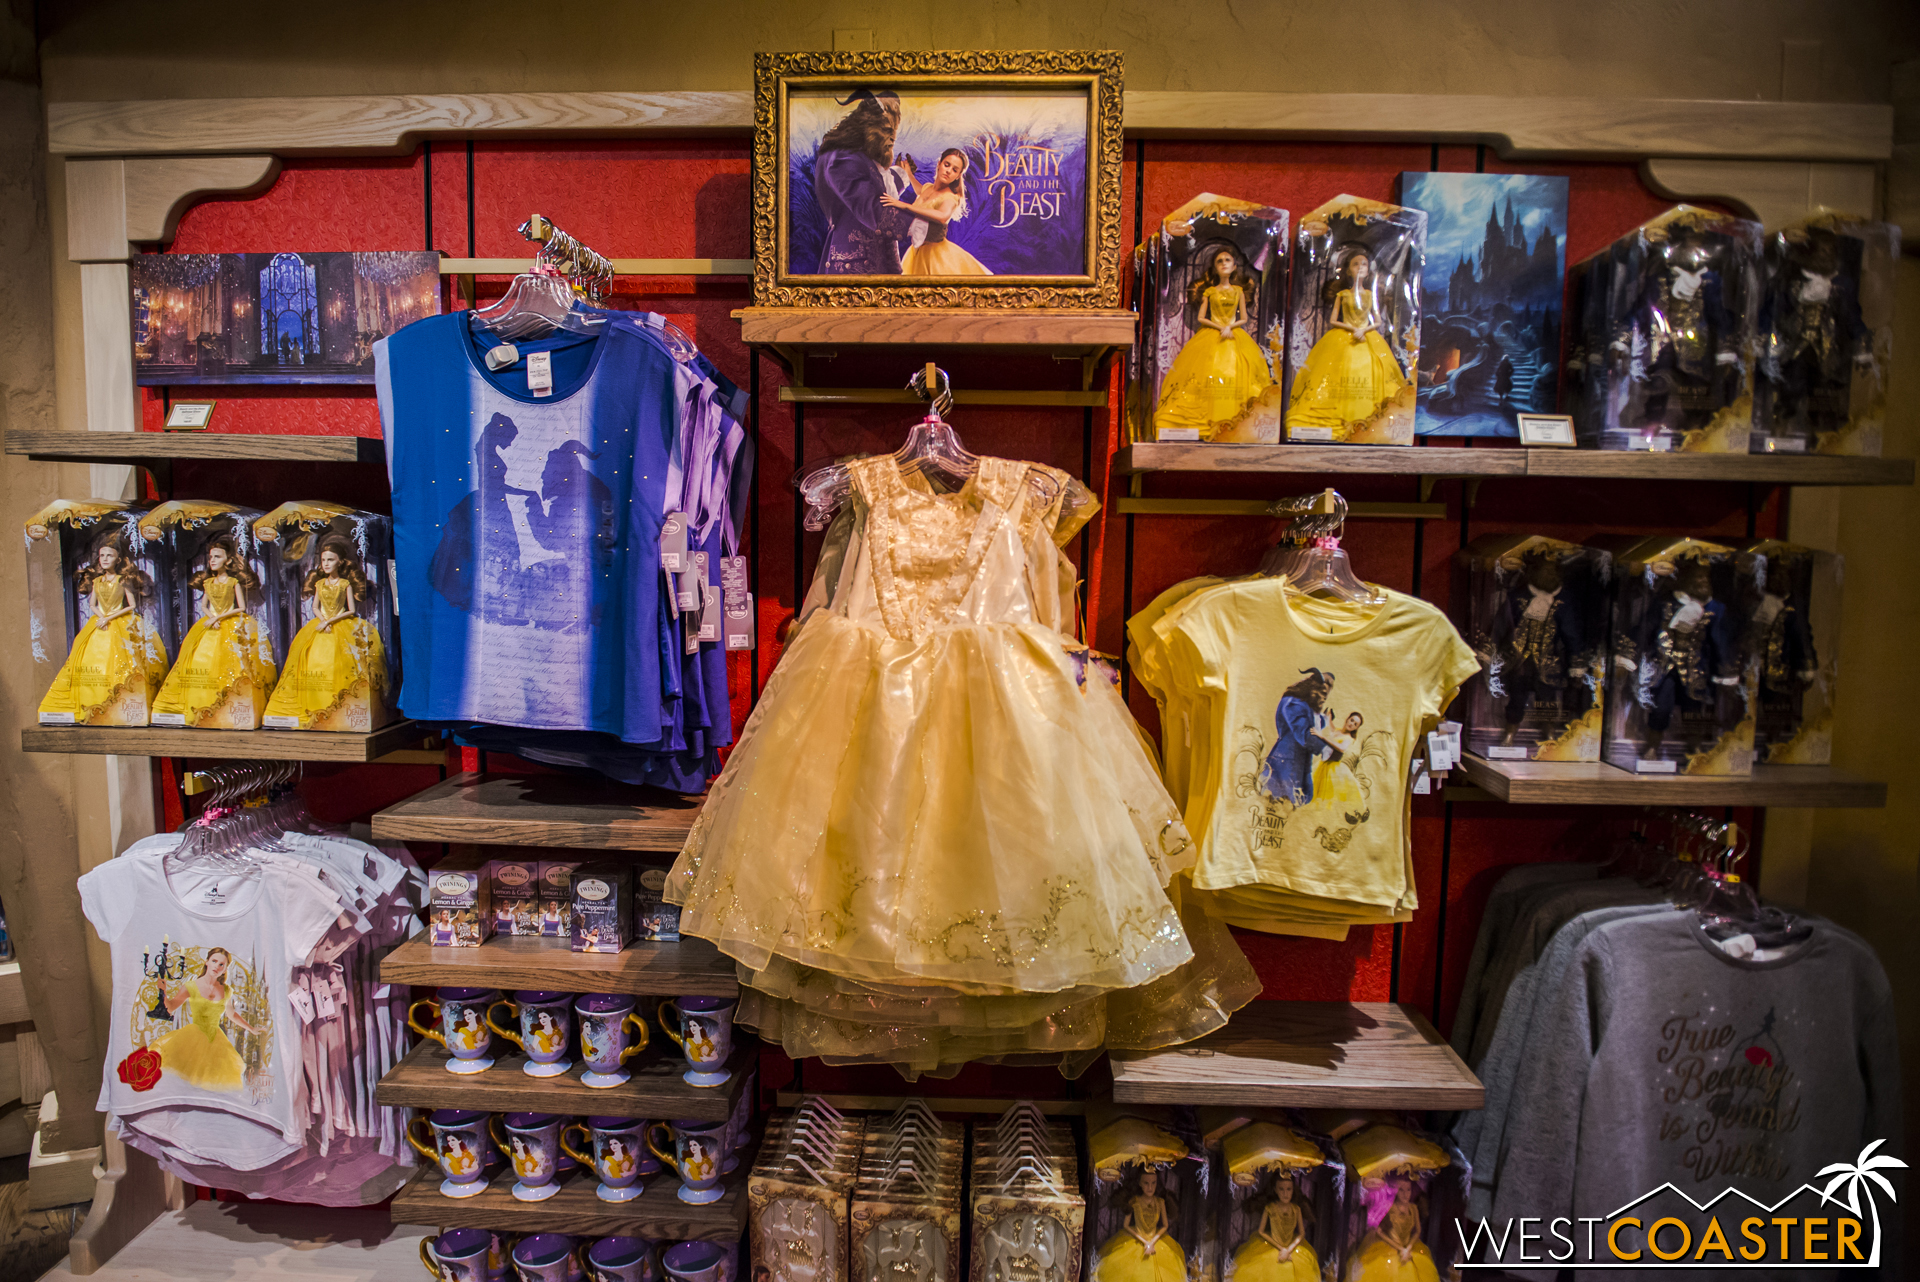 Plenty of merchandise for  Beauty and the Beast  fans, though!